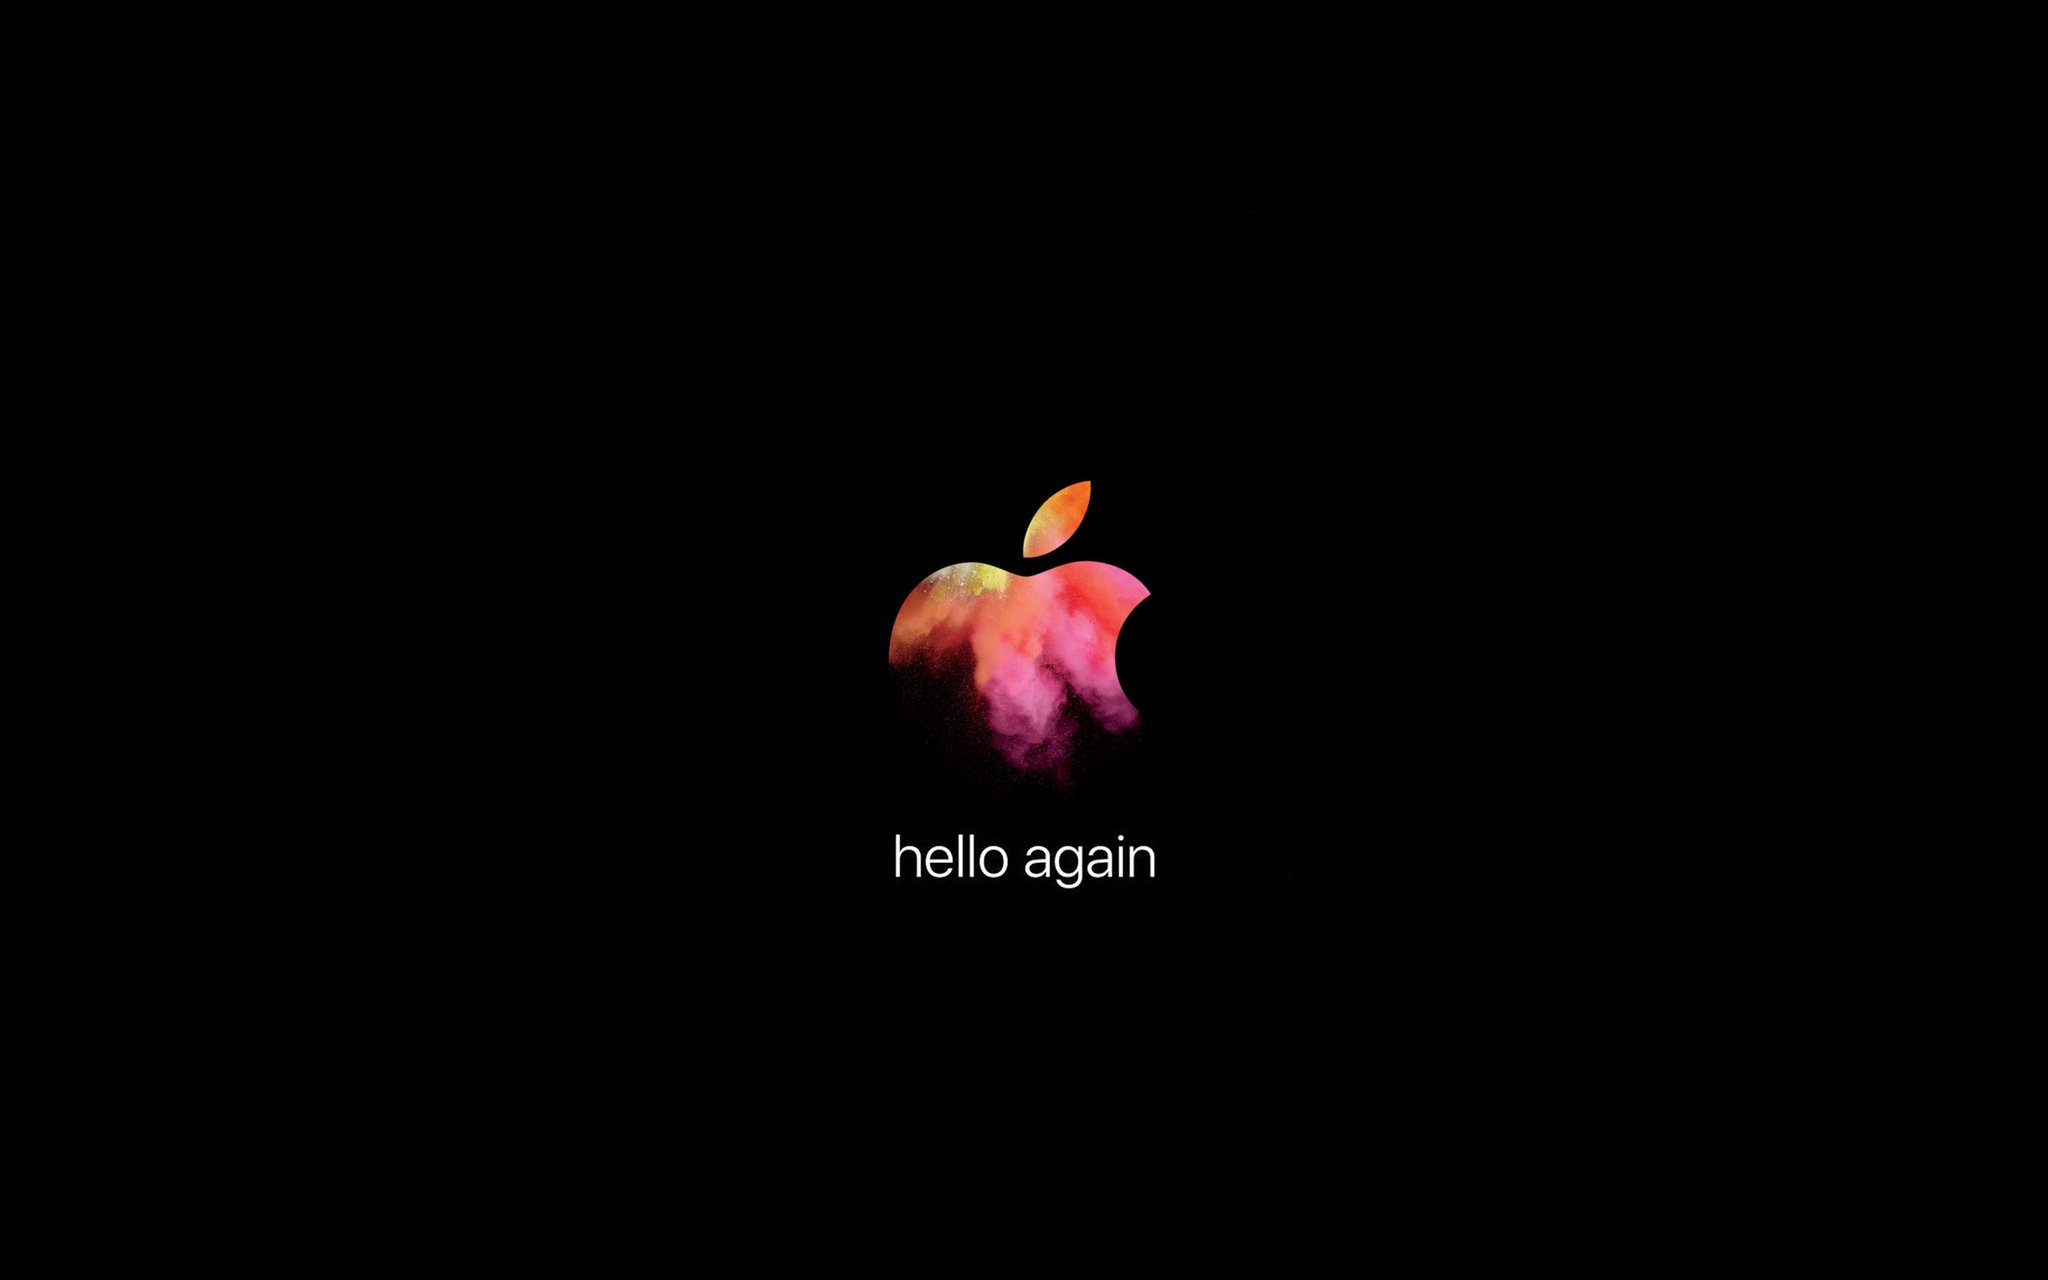 thescottyq_apple-october-27-event-desktop-hello-again